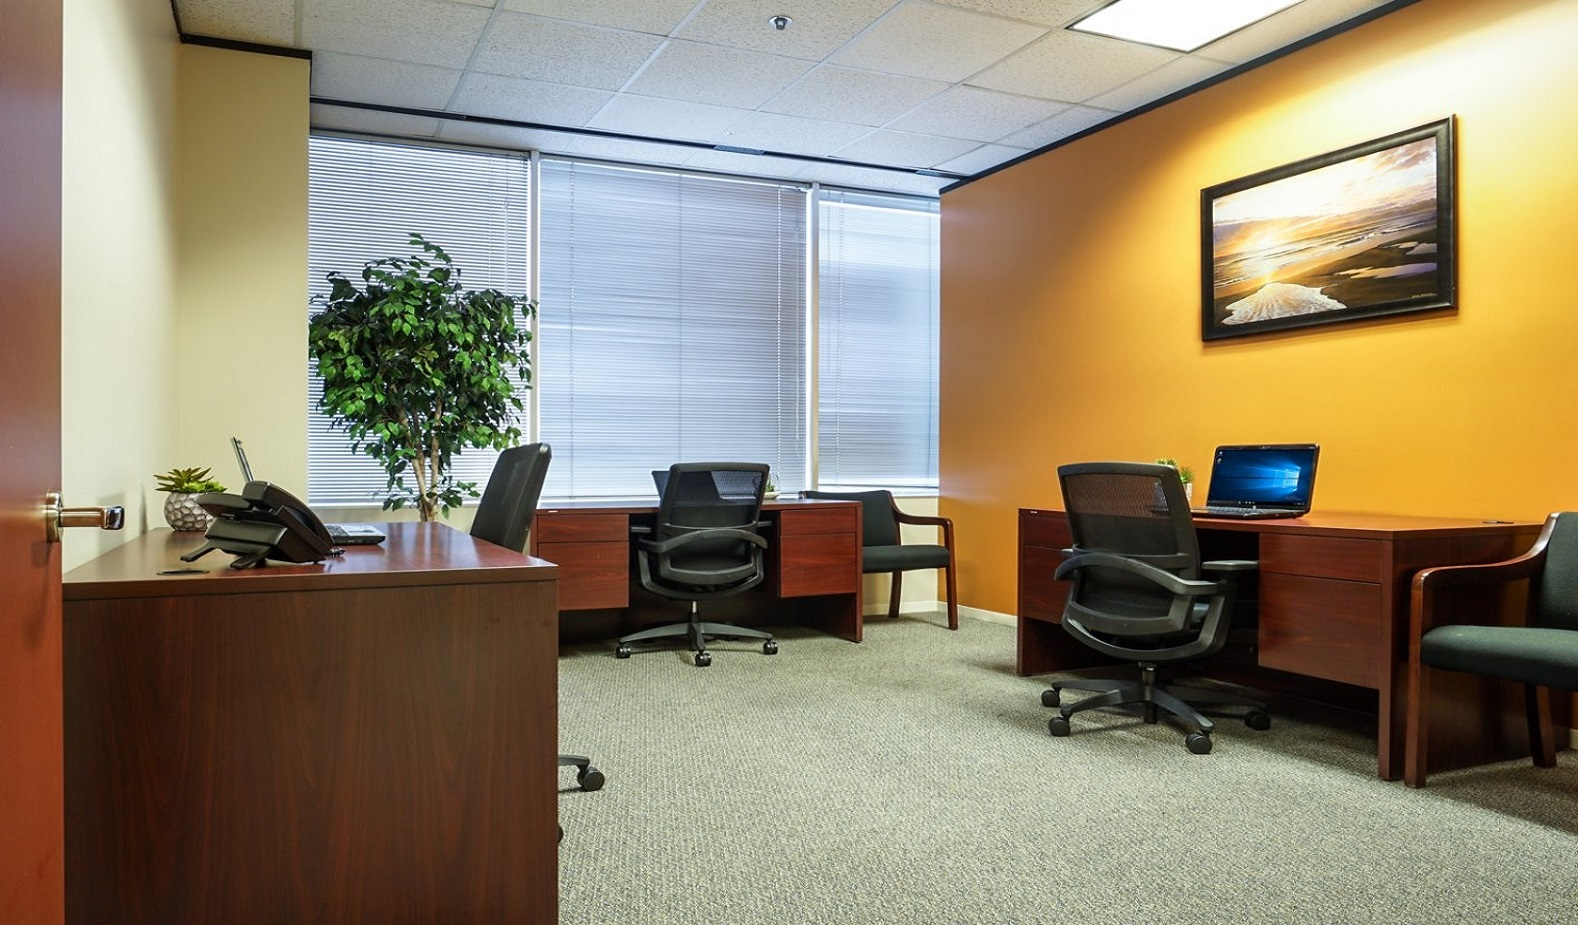 North Houston Executive Office Suites - Shared Office with Window